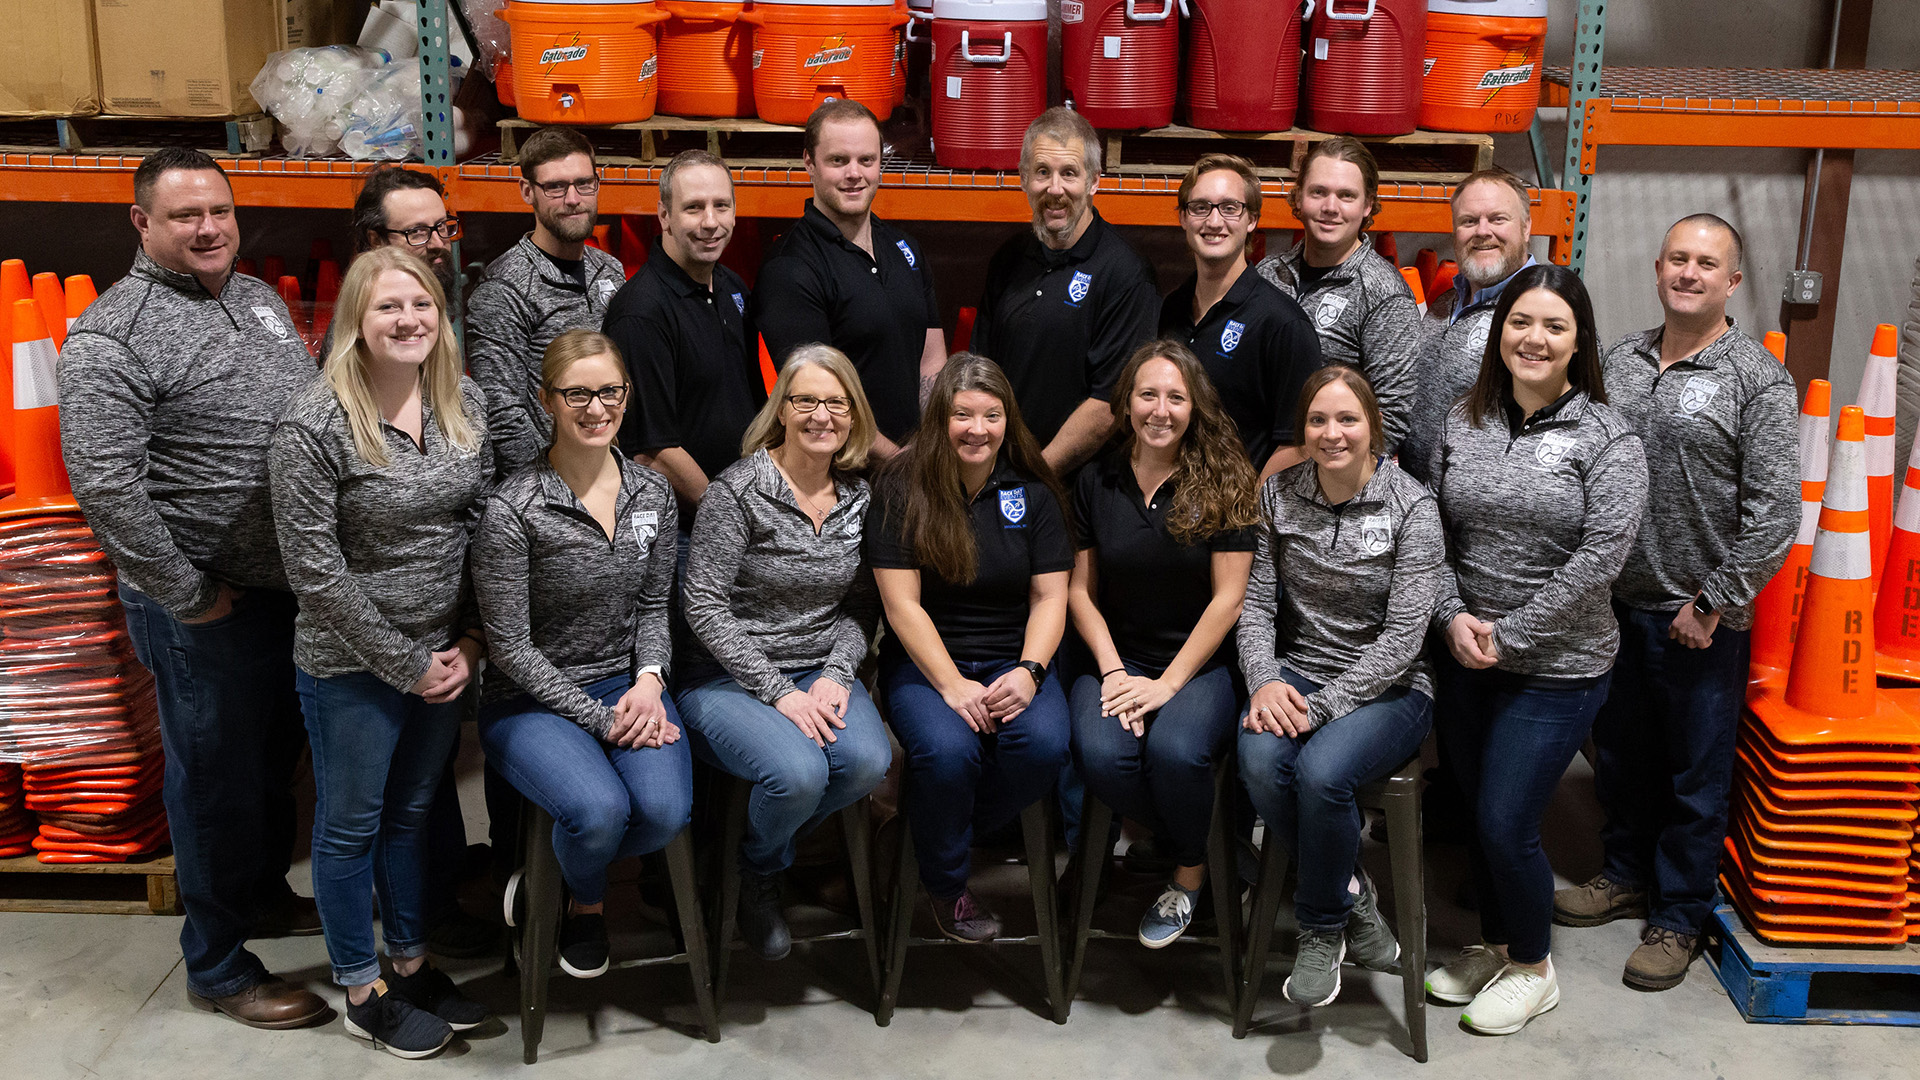 Race Day Events' staff photo; their team standing in front of race equipment like traffic cones and gatorade coolers.